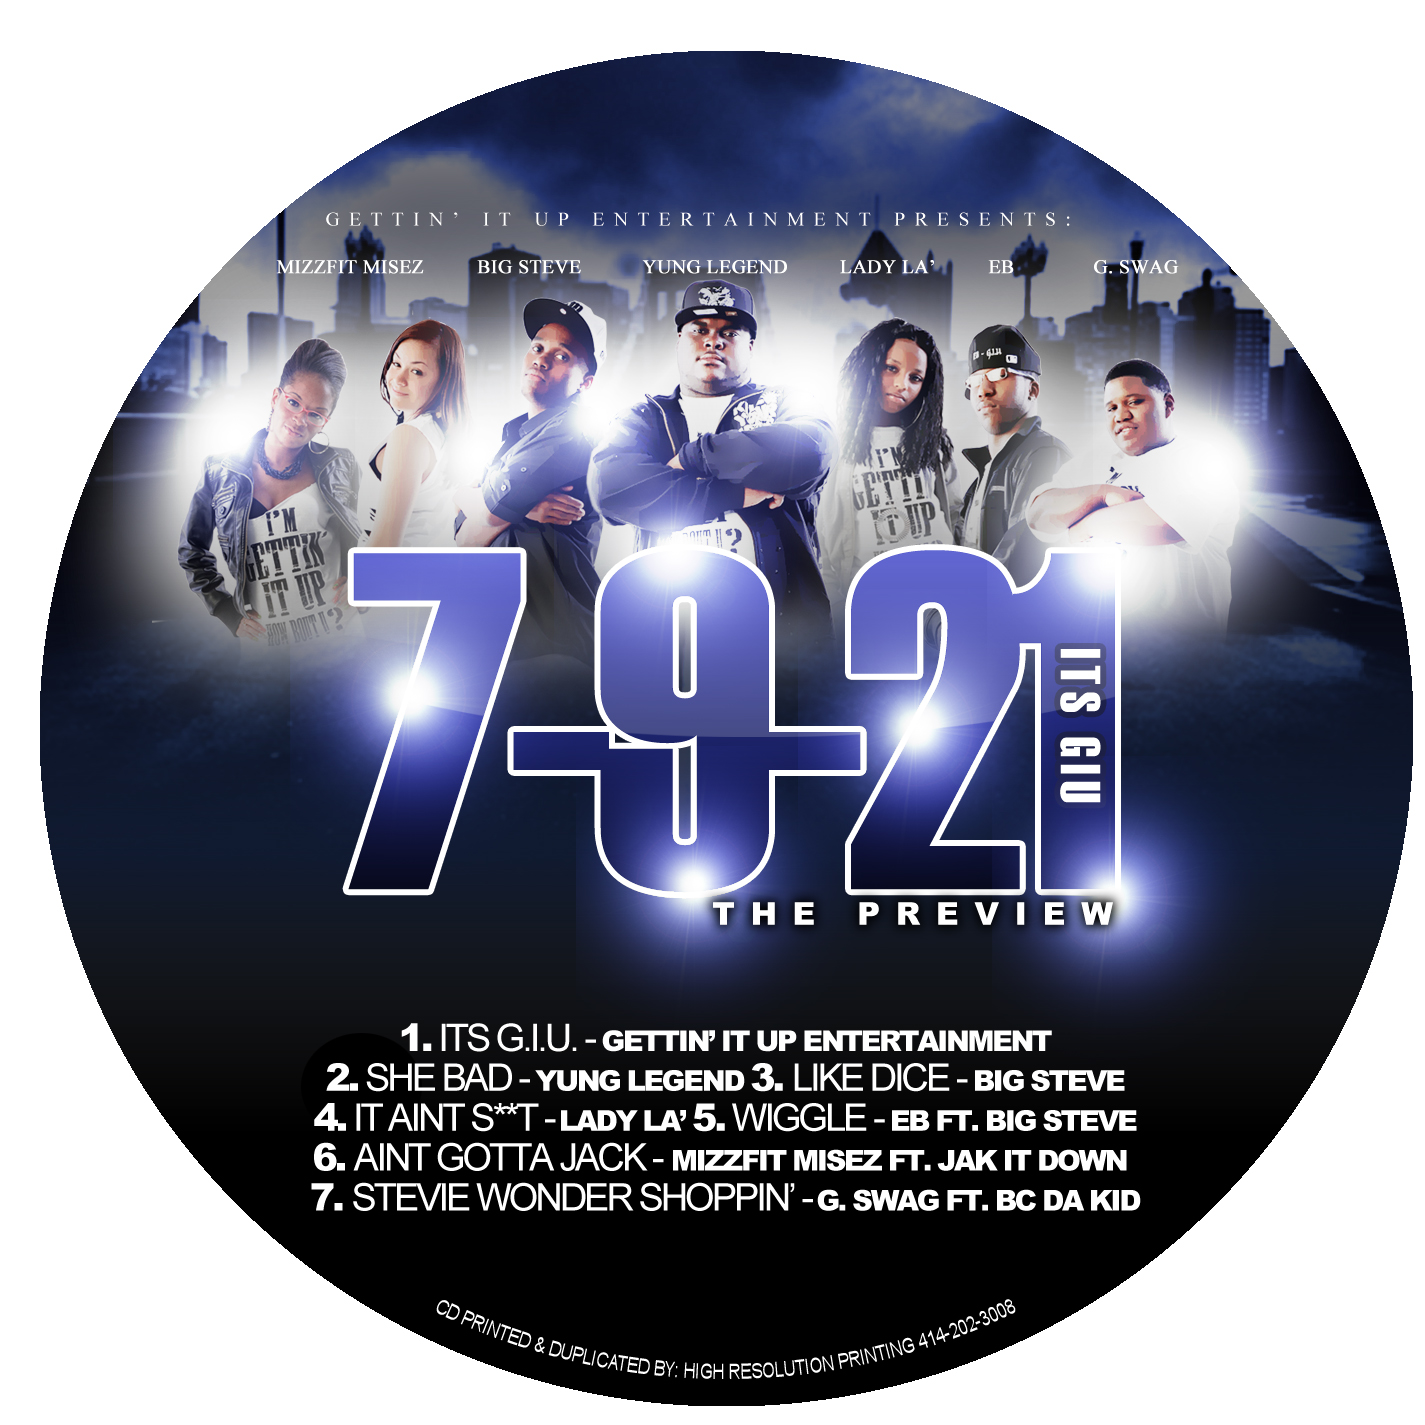 721 PREVIEW CD LABEL 2